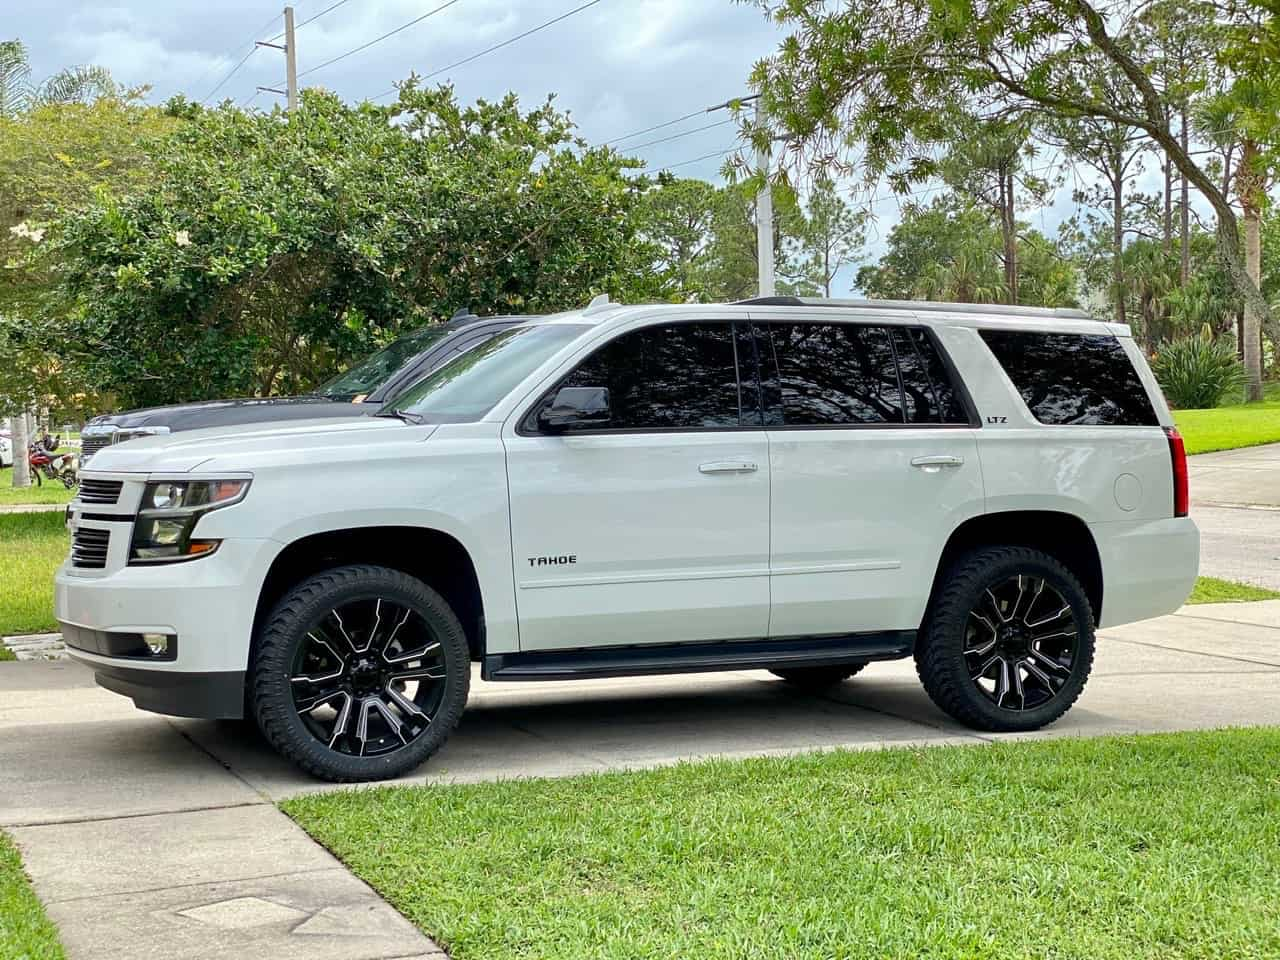 A 2016 Chevrolet Tahoe running the Factory Reproductions Fr72 22x9 +24 wrapped in Atturo Trail Blade Xt 305/45 and riding on a Maxx Leveling Kit